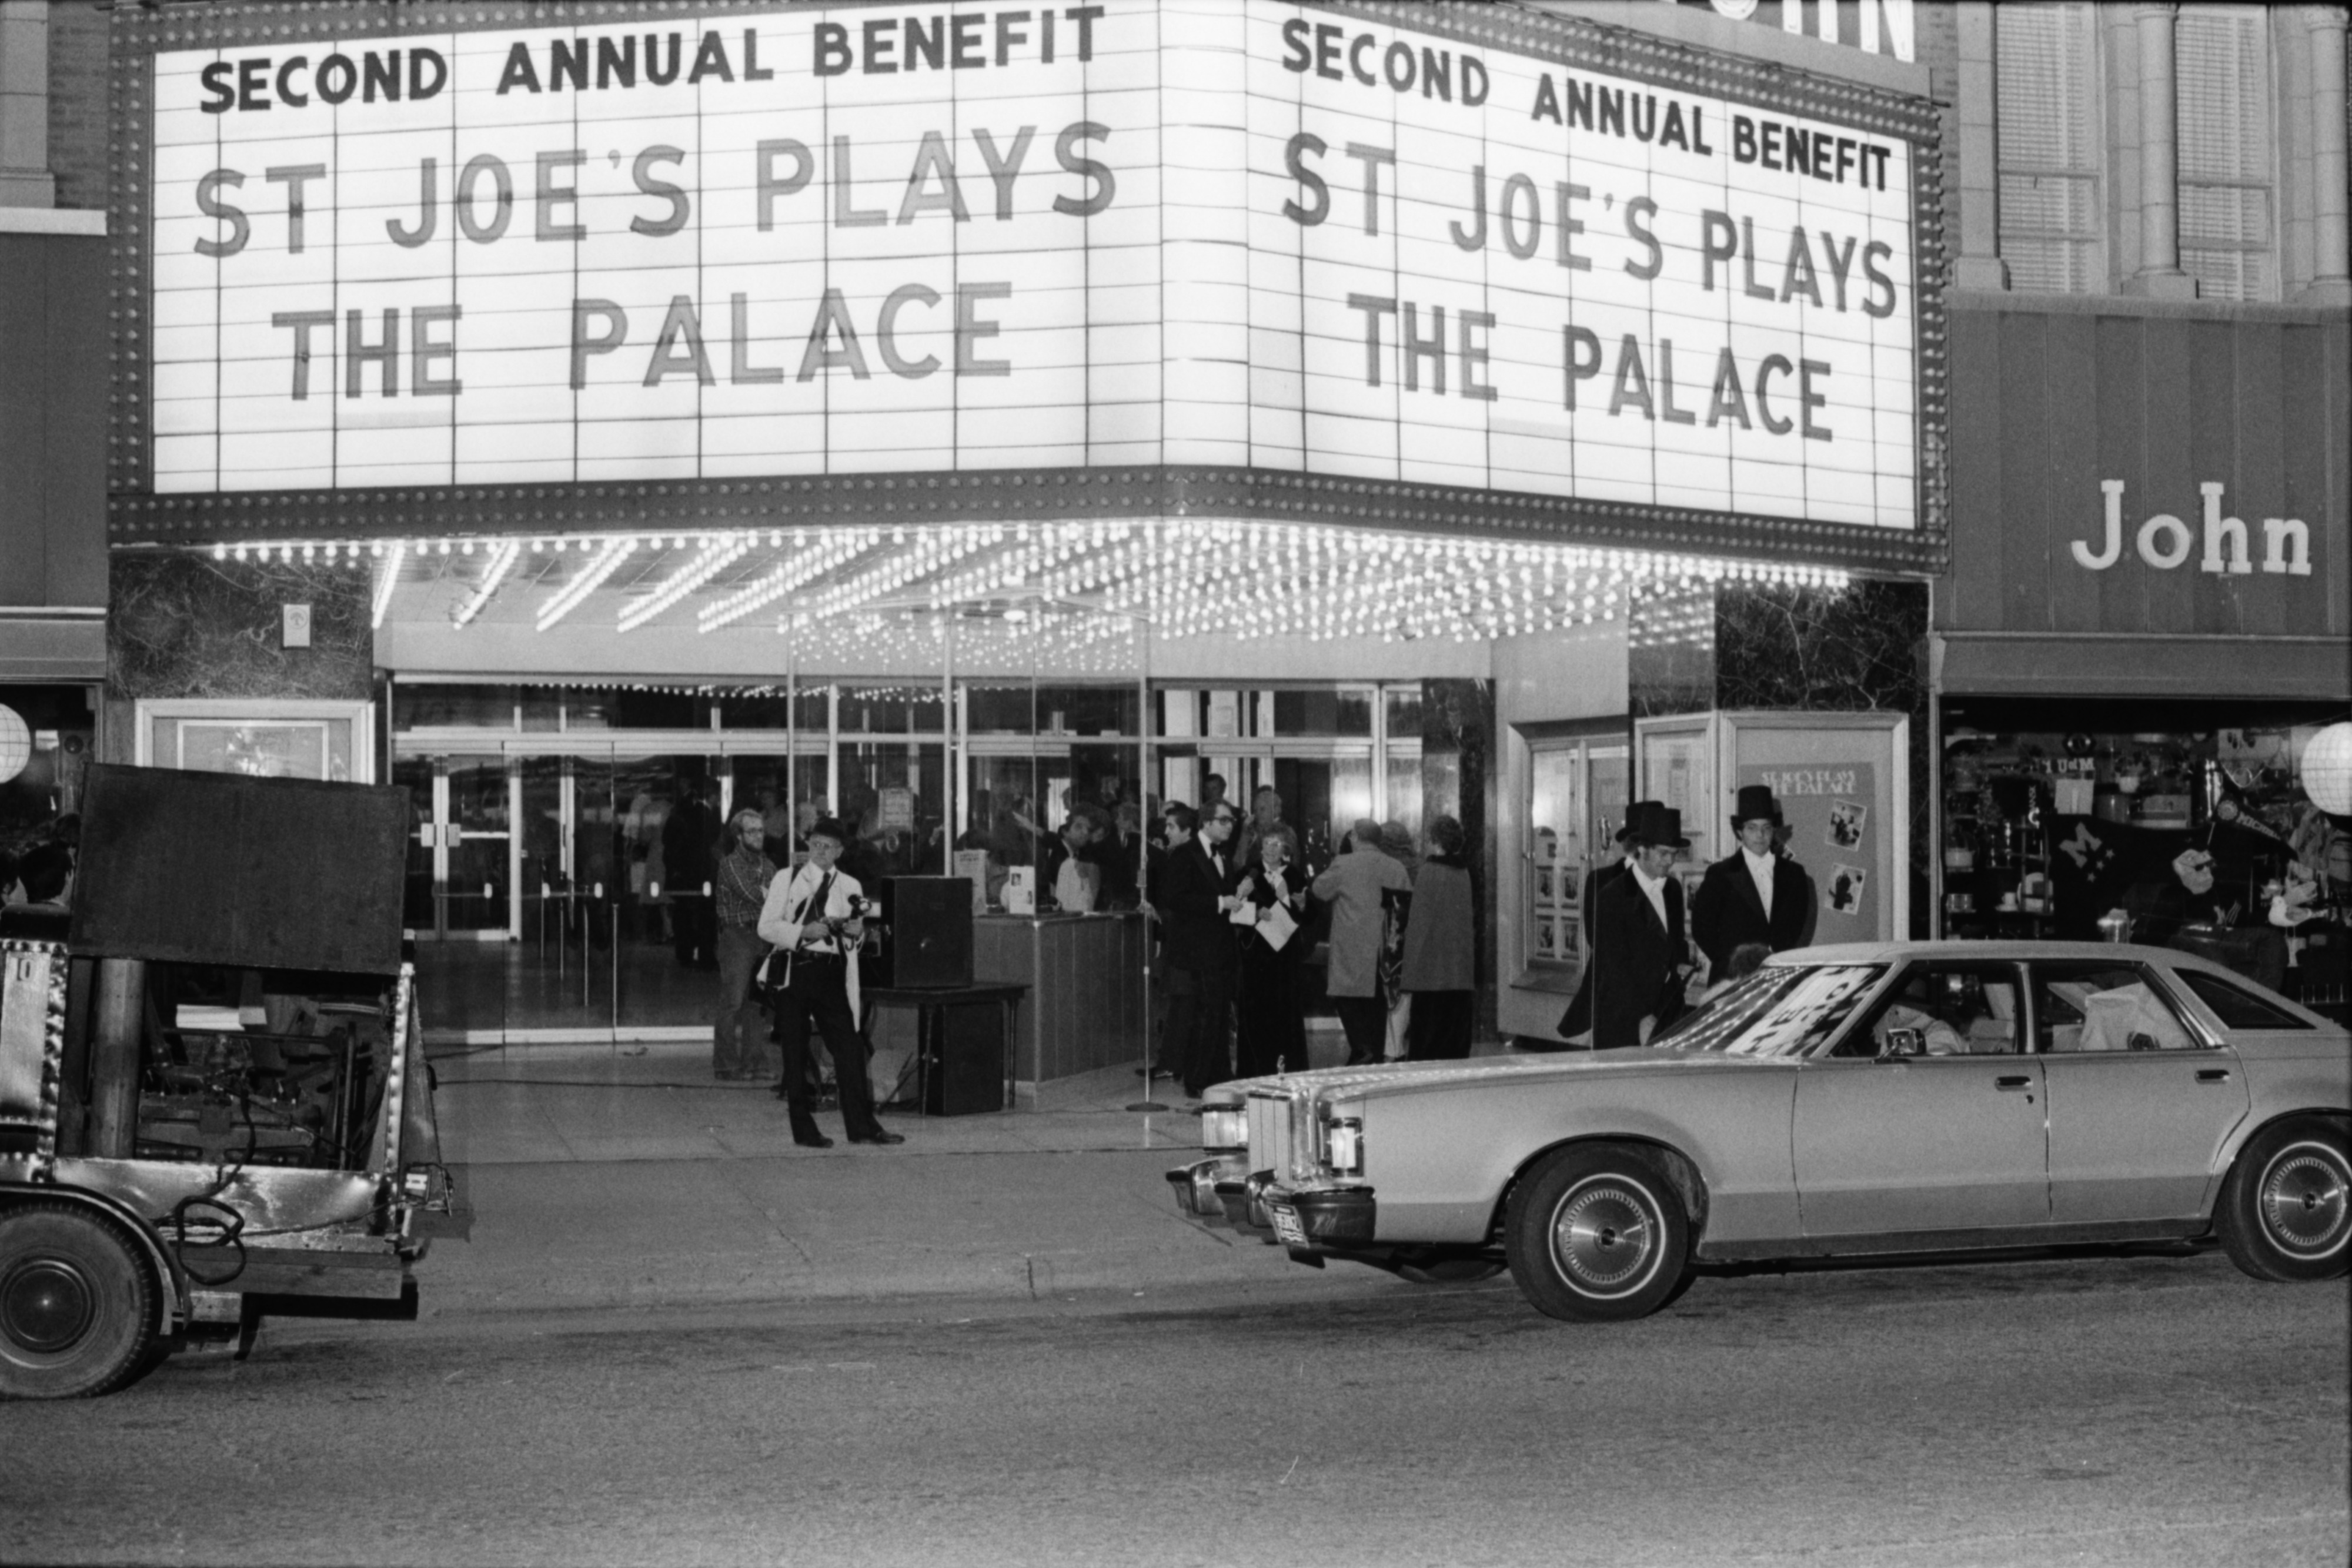 St. Joe's Plays the Palace Charity Event, October 1977 image